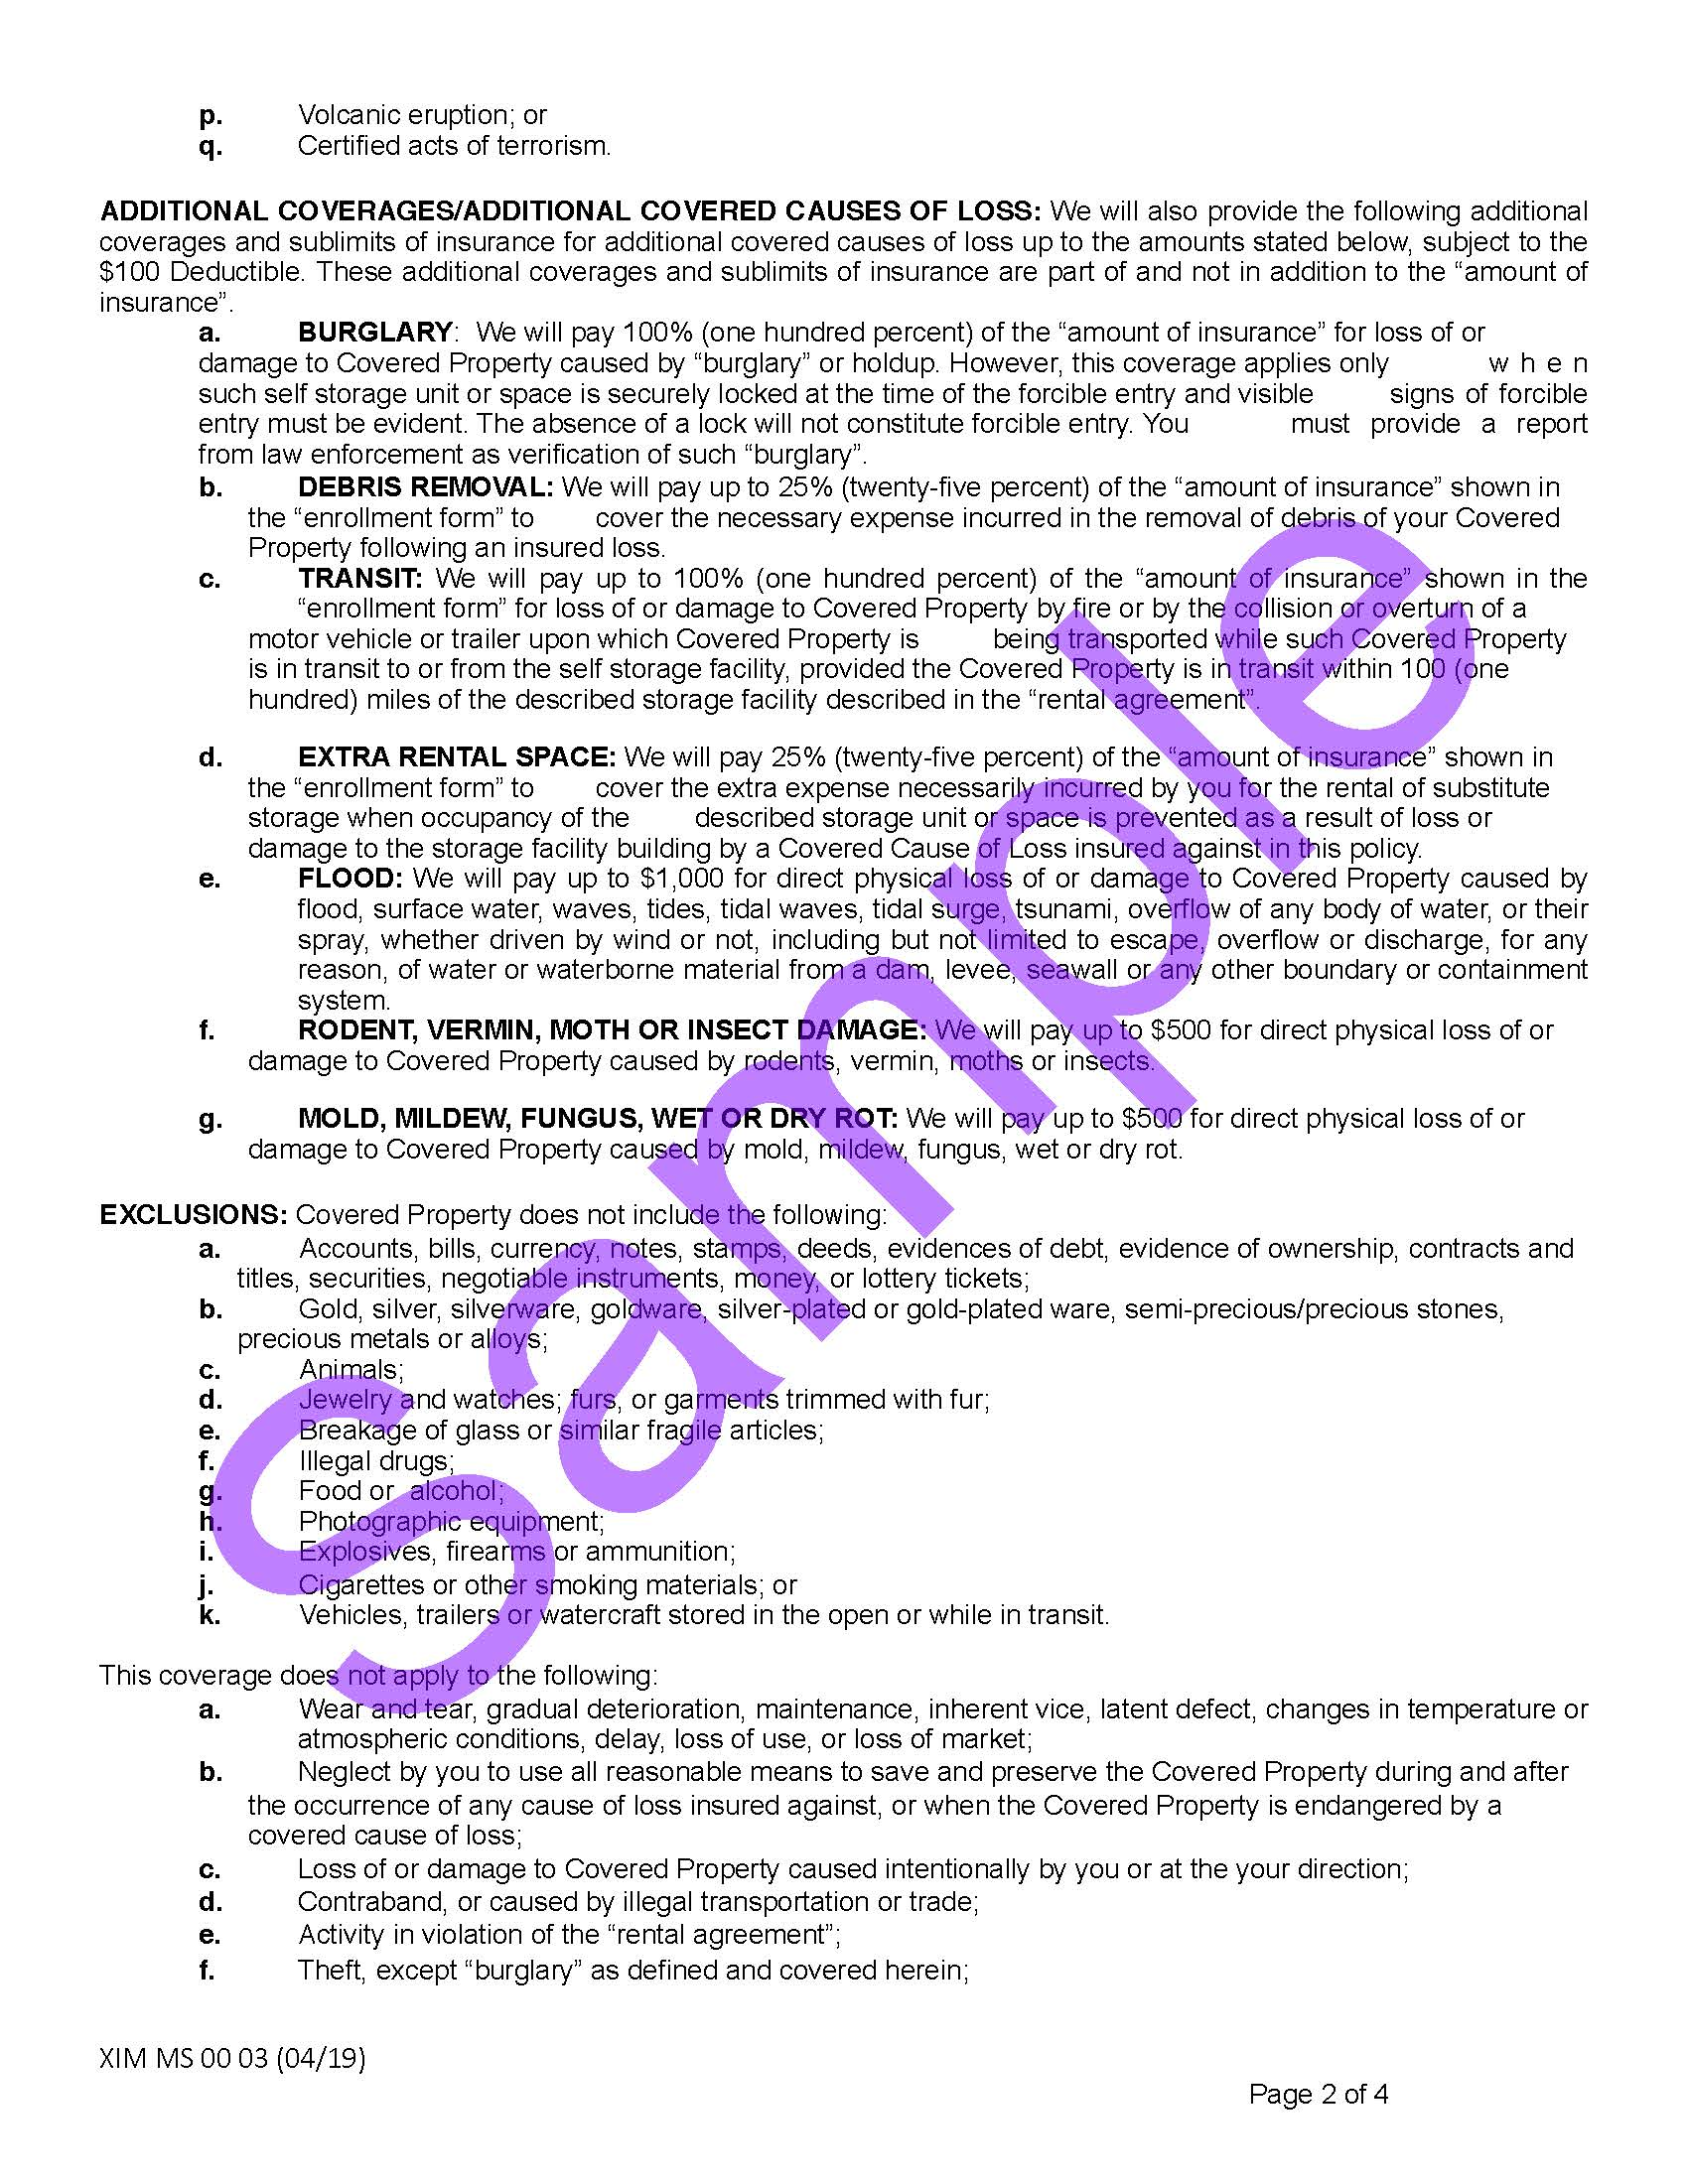 XIM MS 00 03 04 19 Mississippi Certificate of InsuranceSample_Page_2.jpg